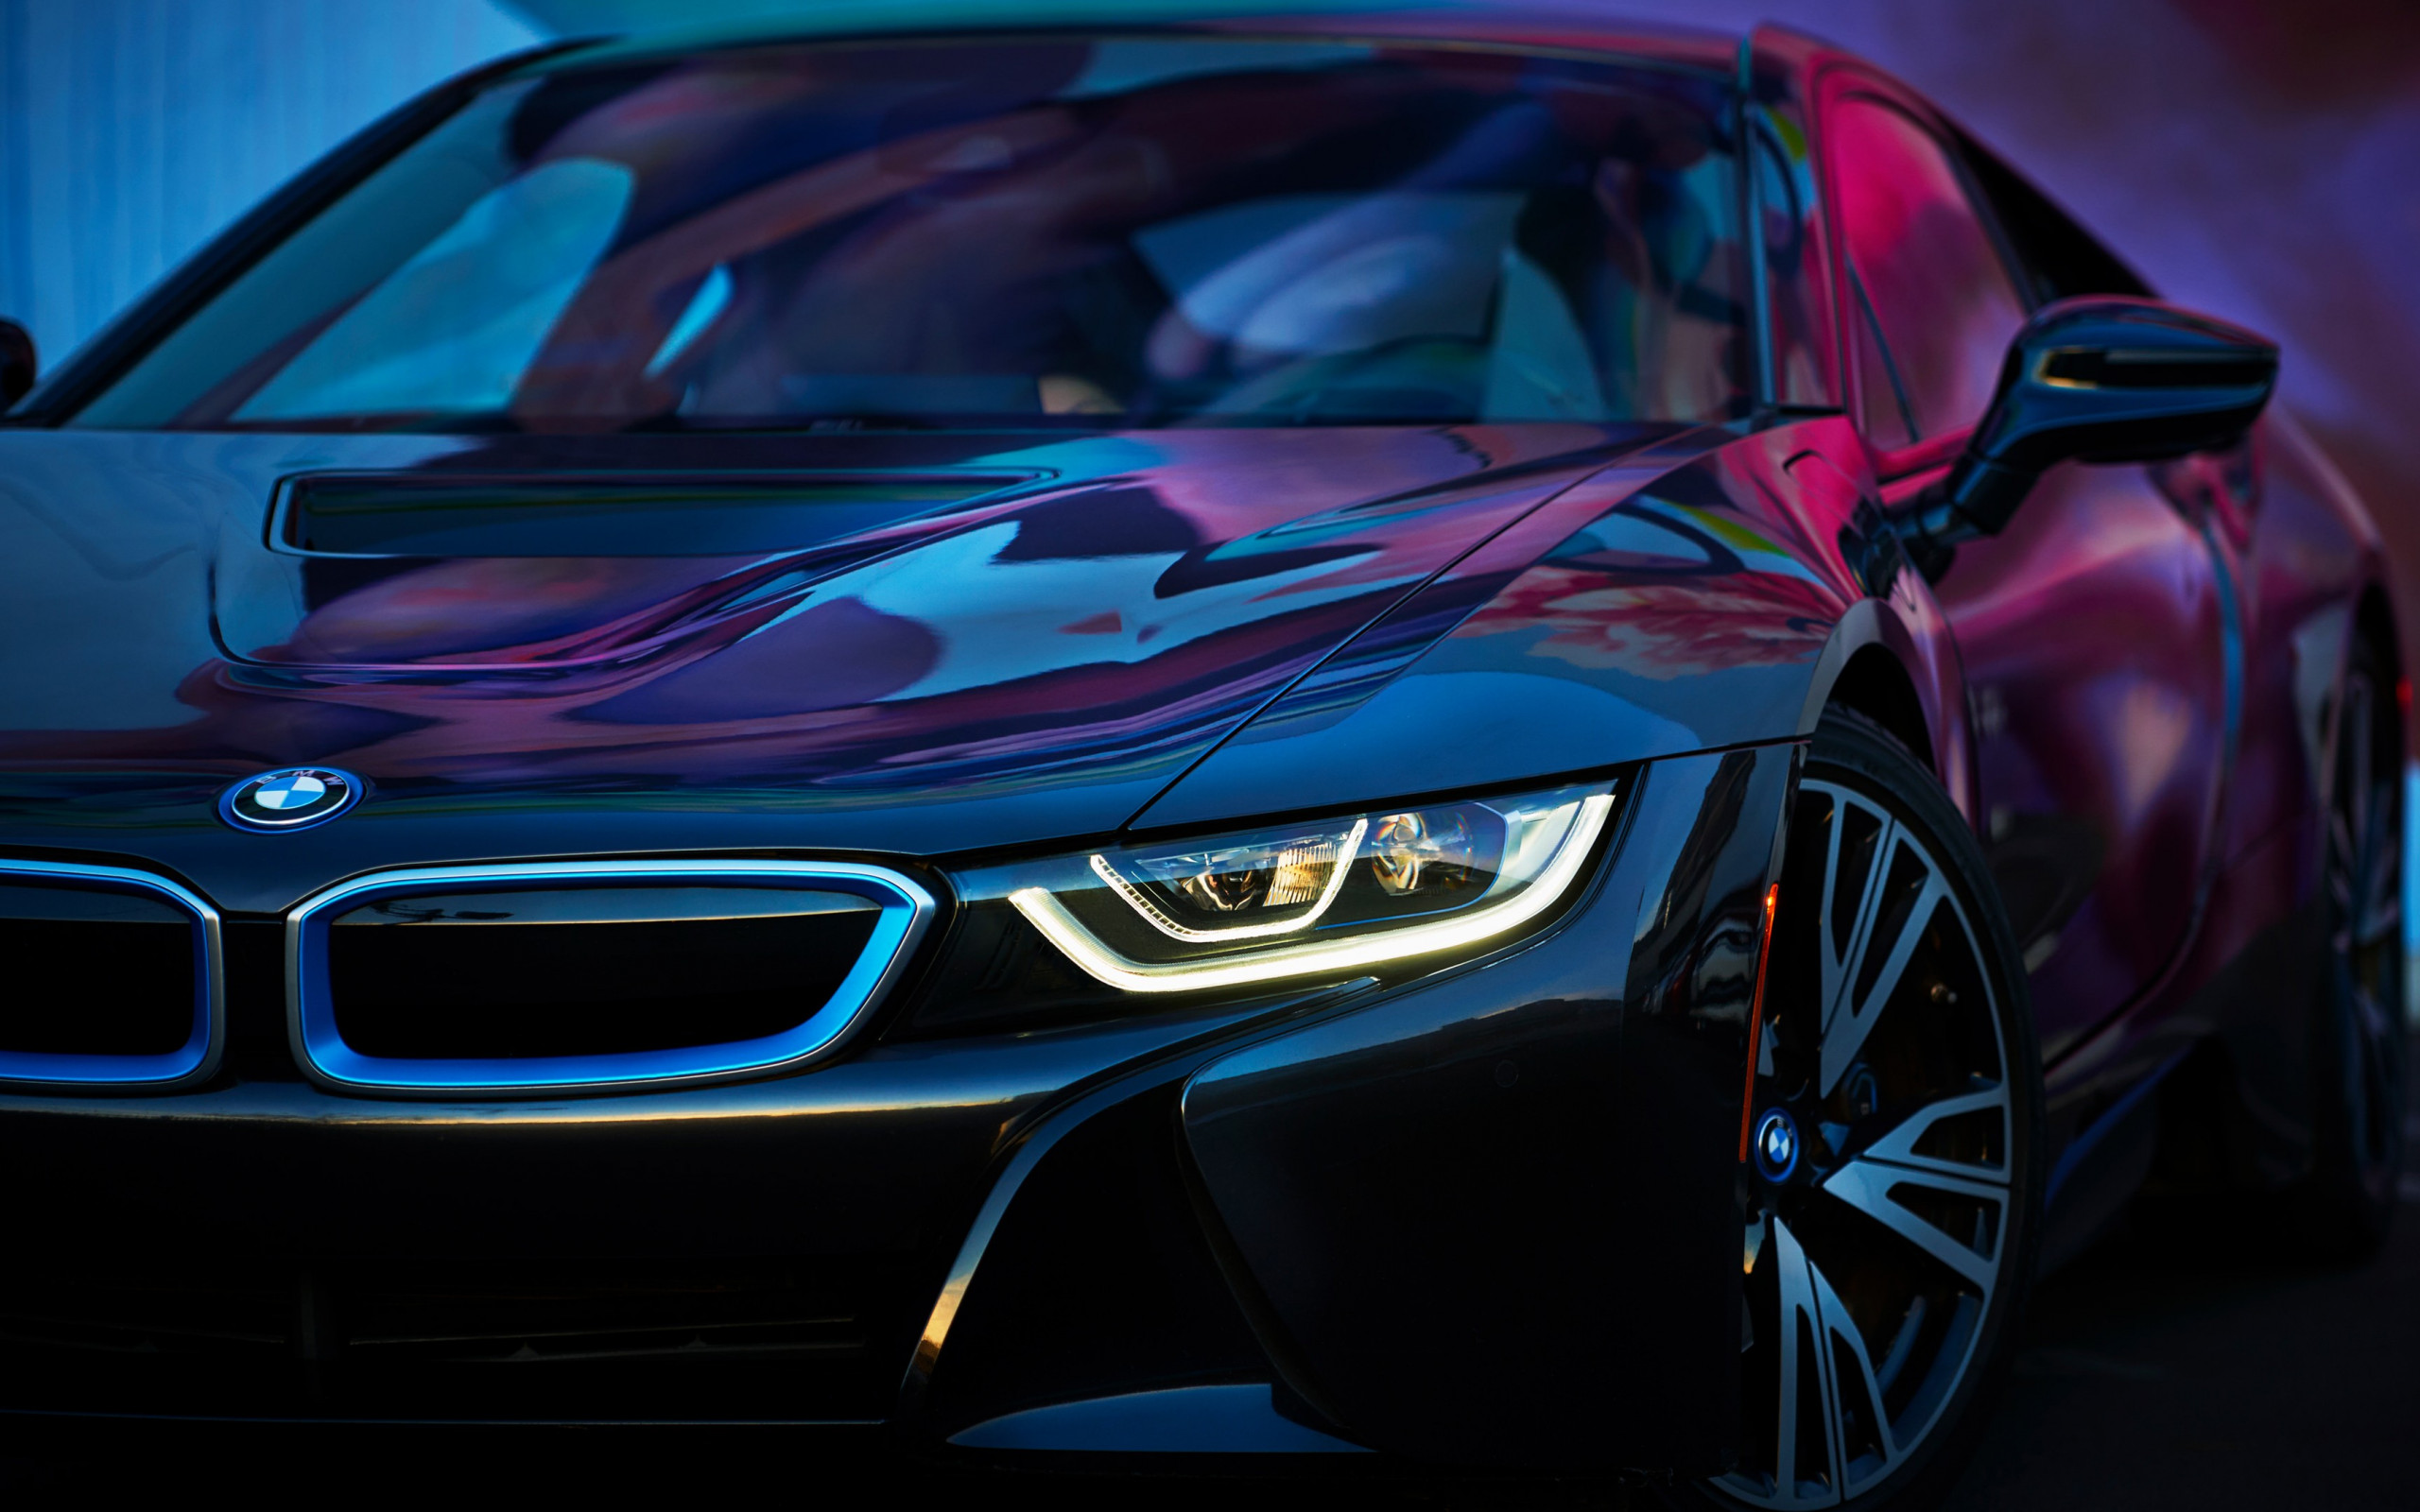 BMW i8 wallpaper 2560x1600